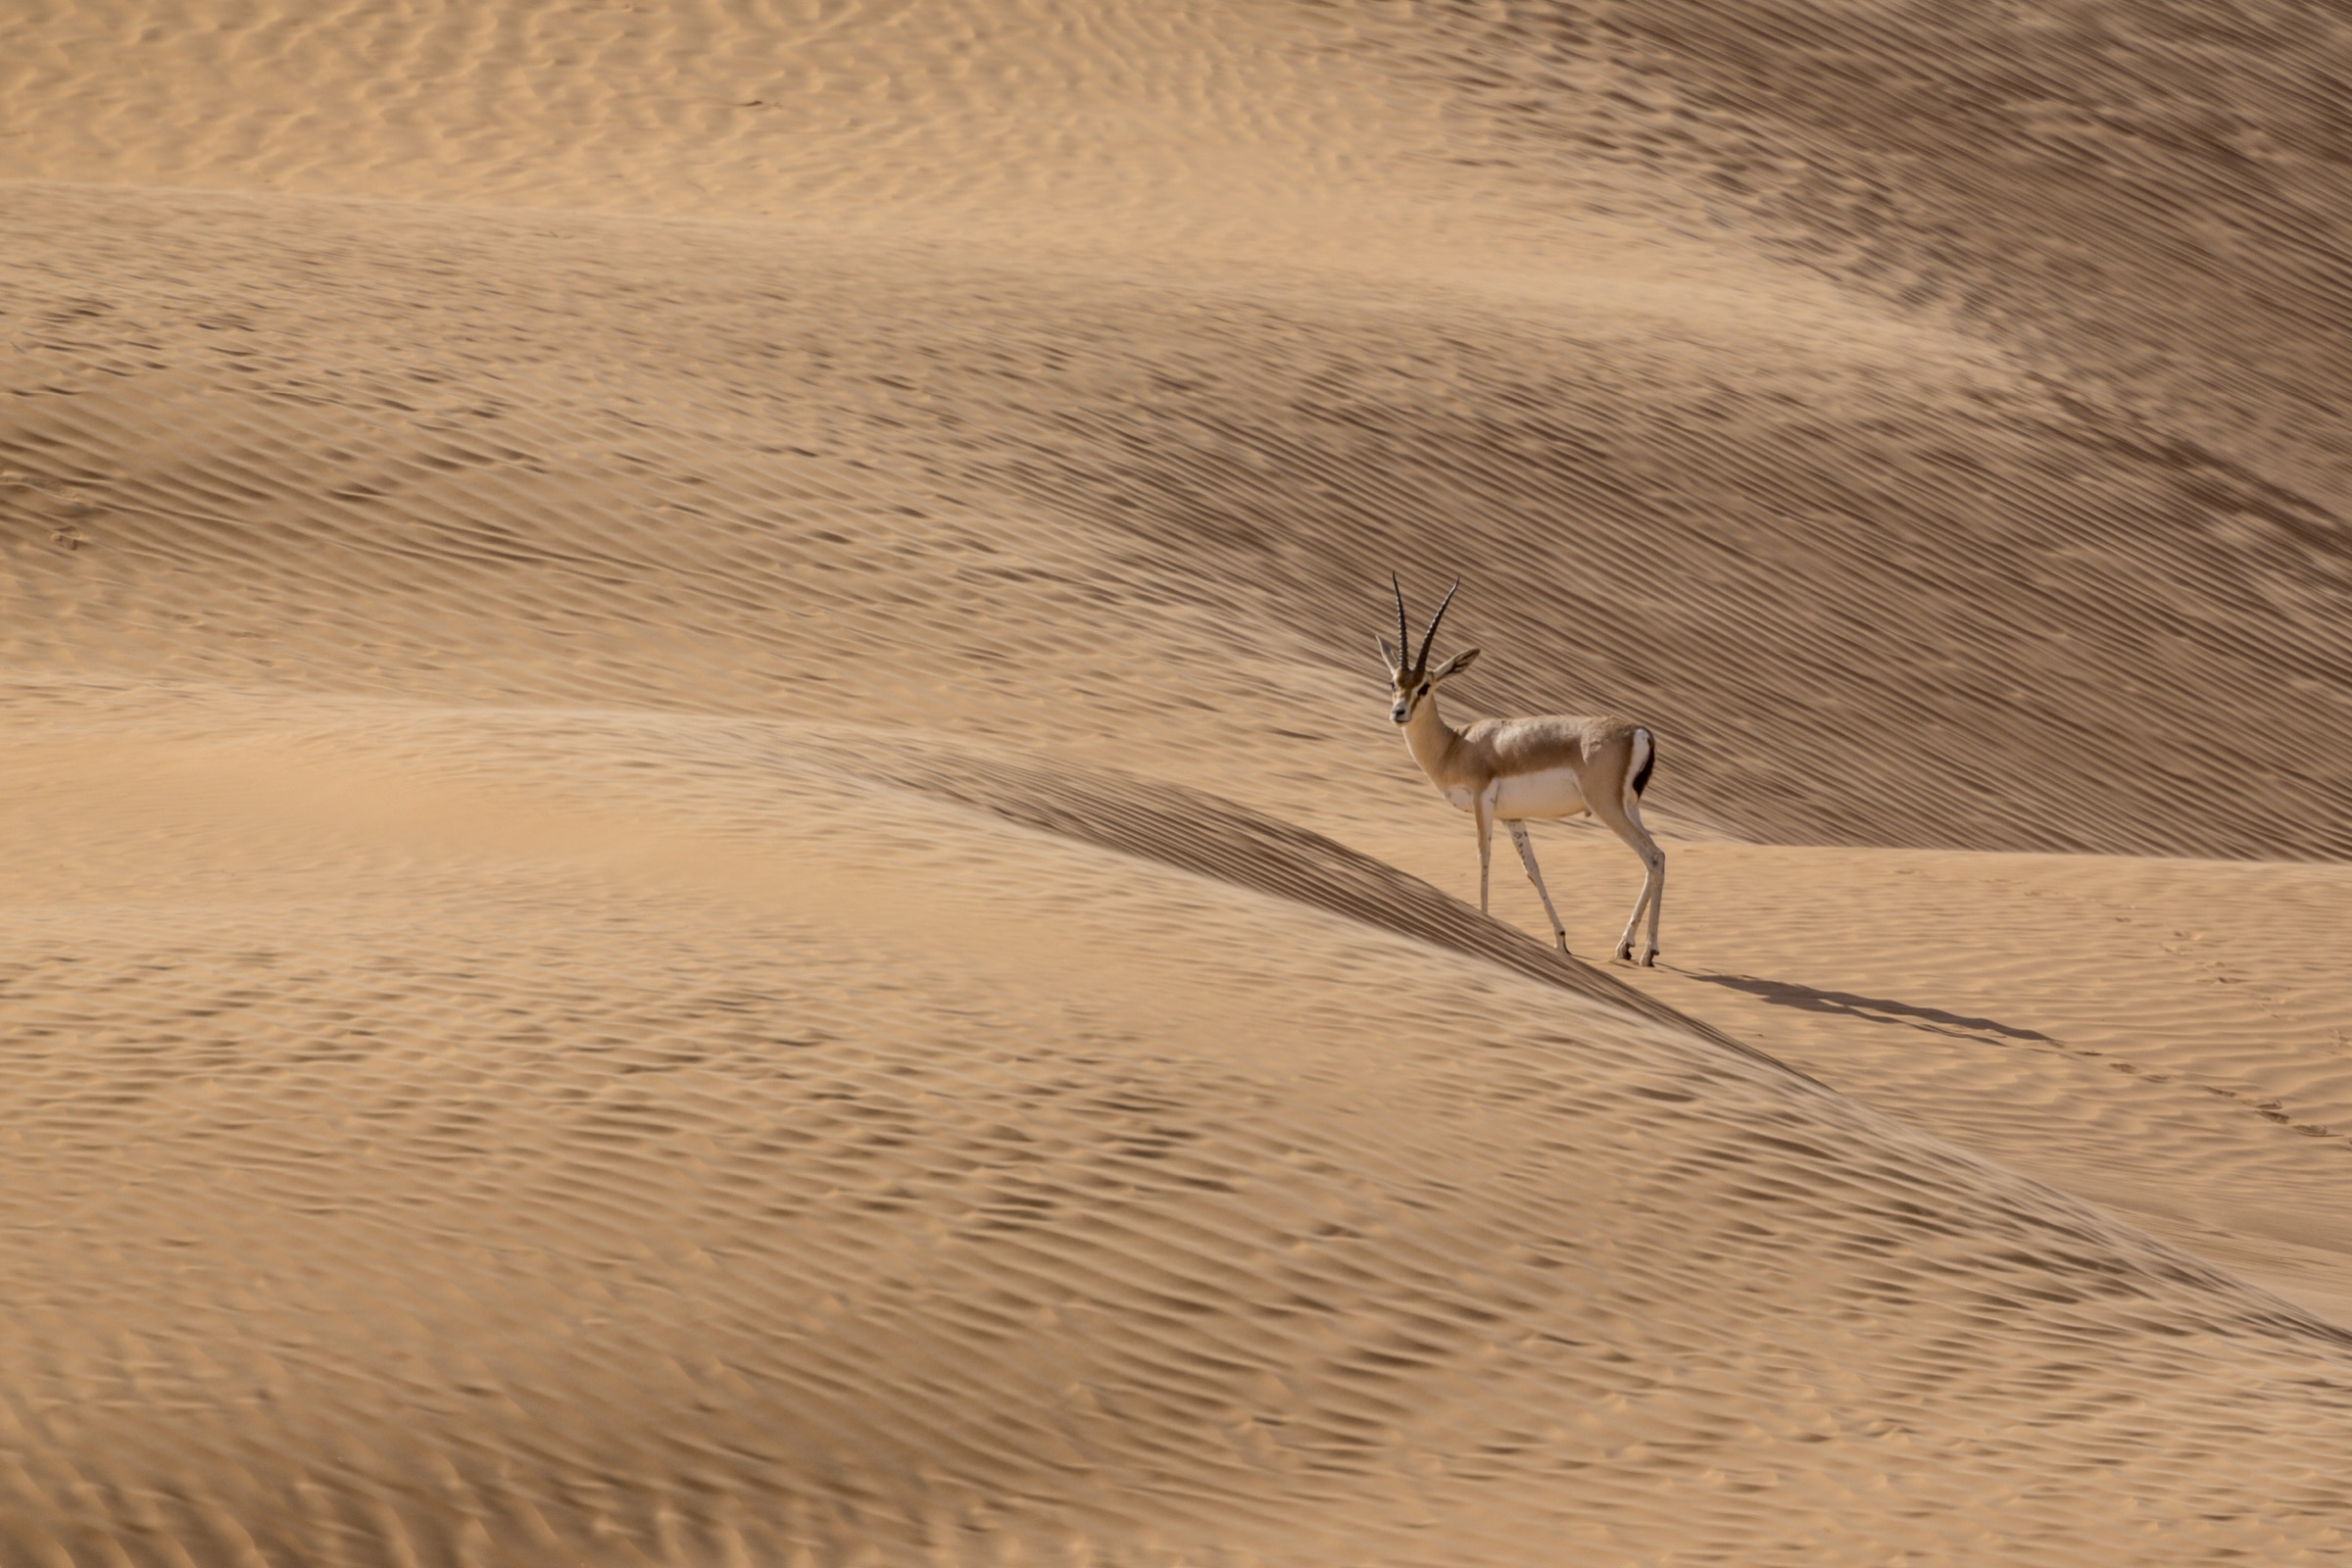 One of the few remaining slender-horned gazelles (<em>Gazella leptoceros loderi</em>) in the Tunisian Sahara. In recent decades, poachers have hunted the species nearly to extinction in the wild, killing the adults and selling any offspring to wealthy landowners for their private menageries.